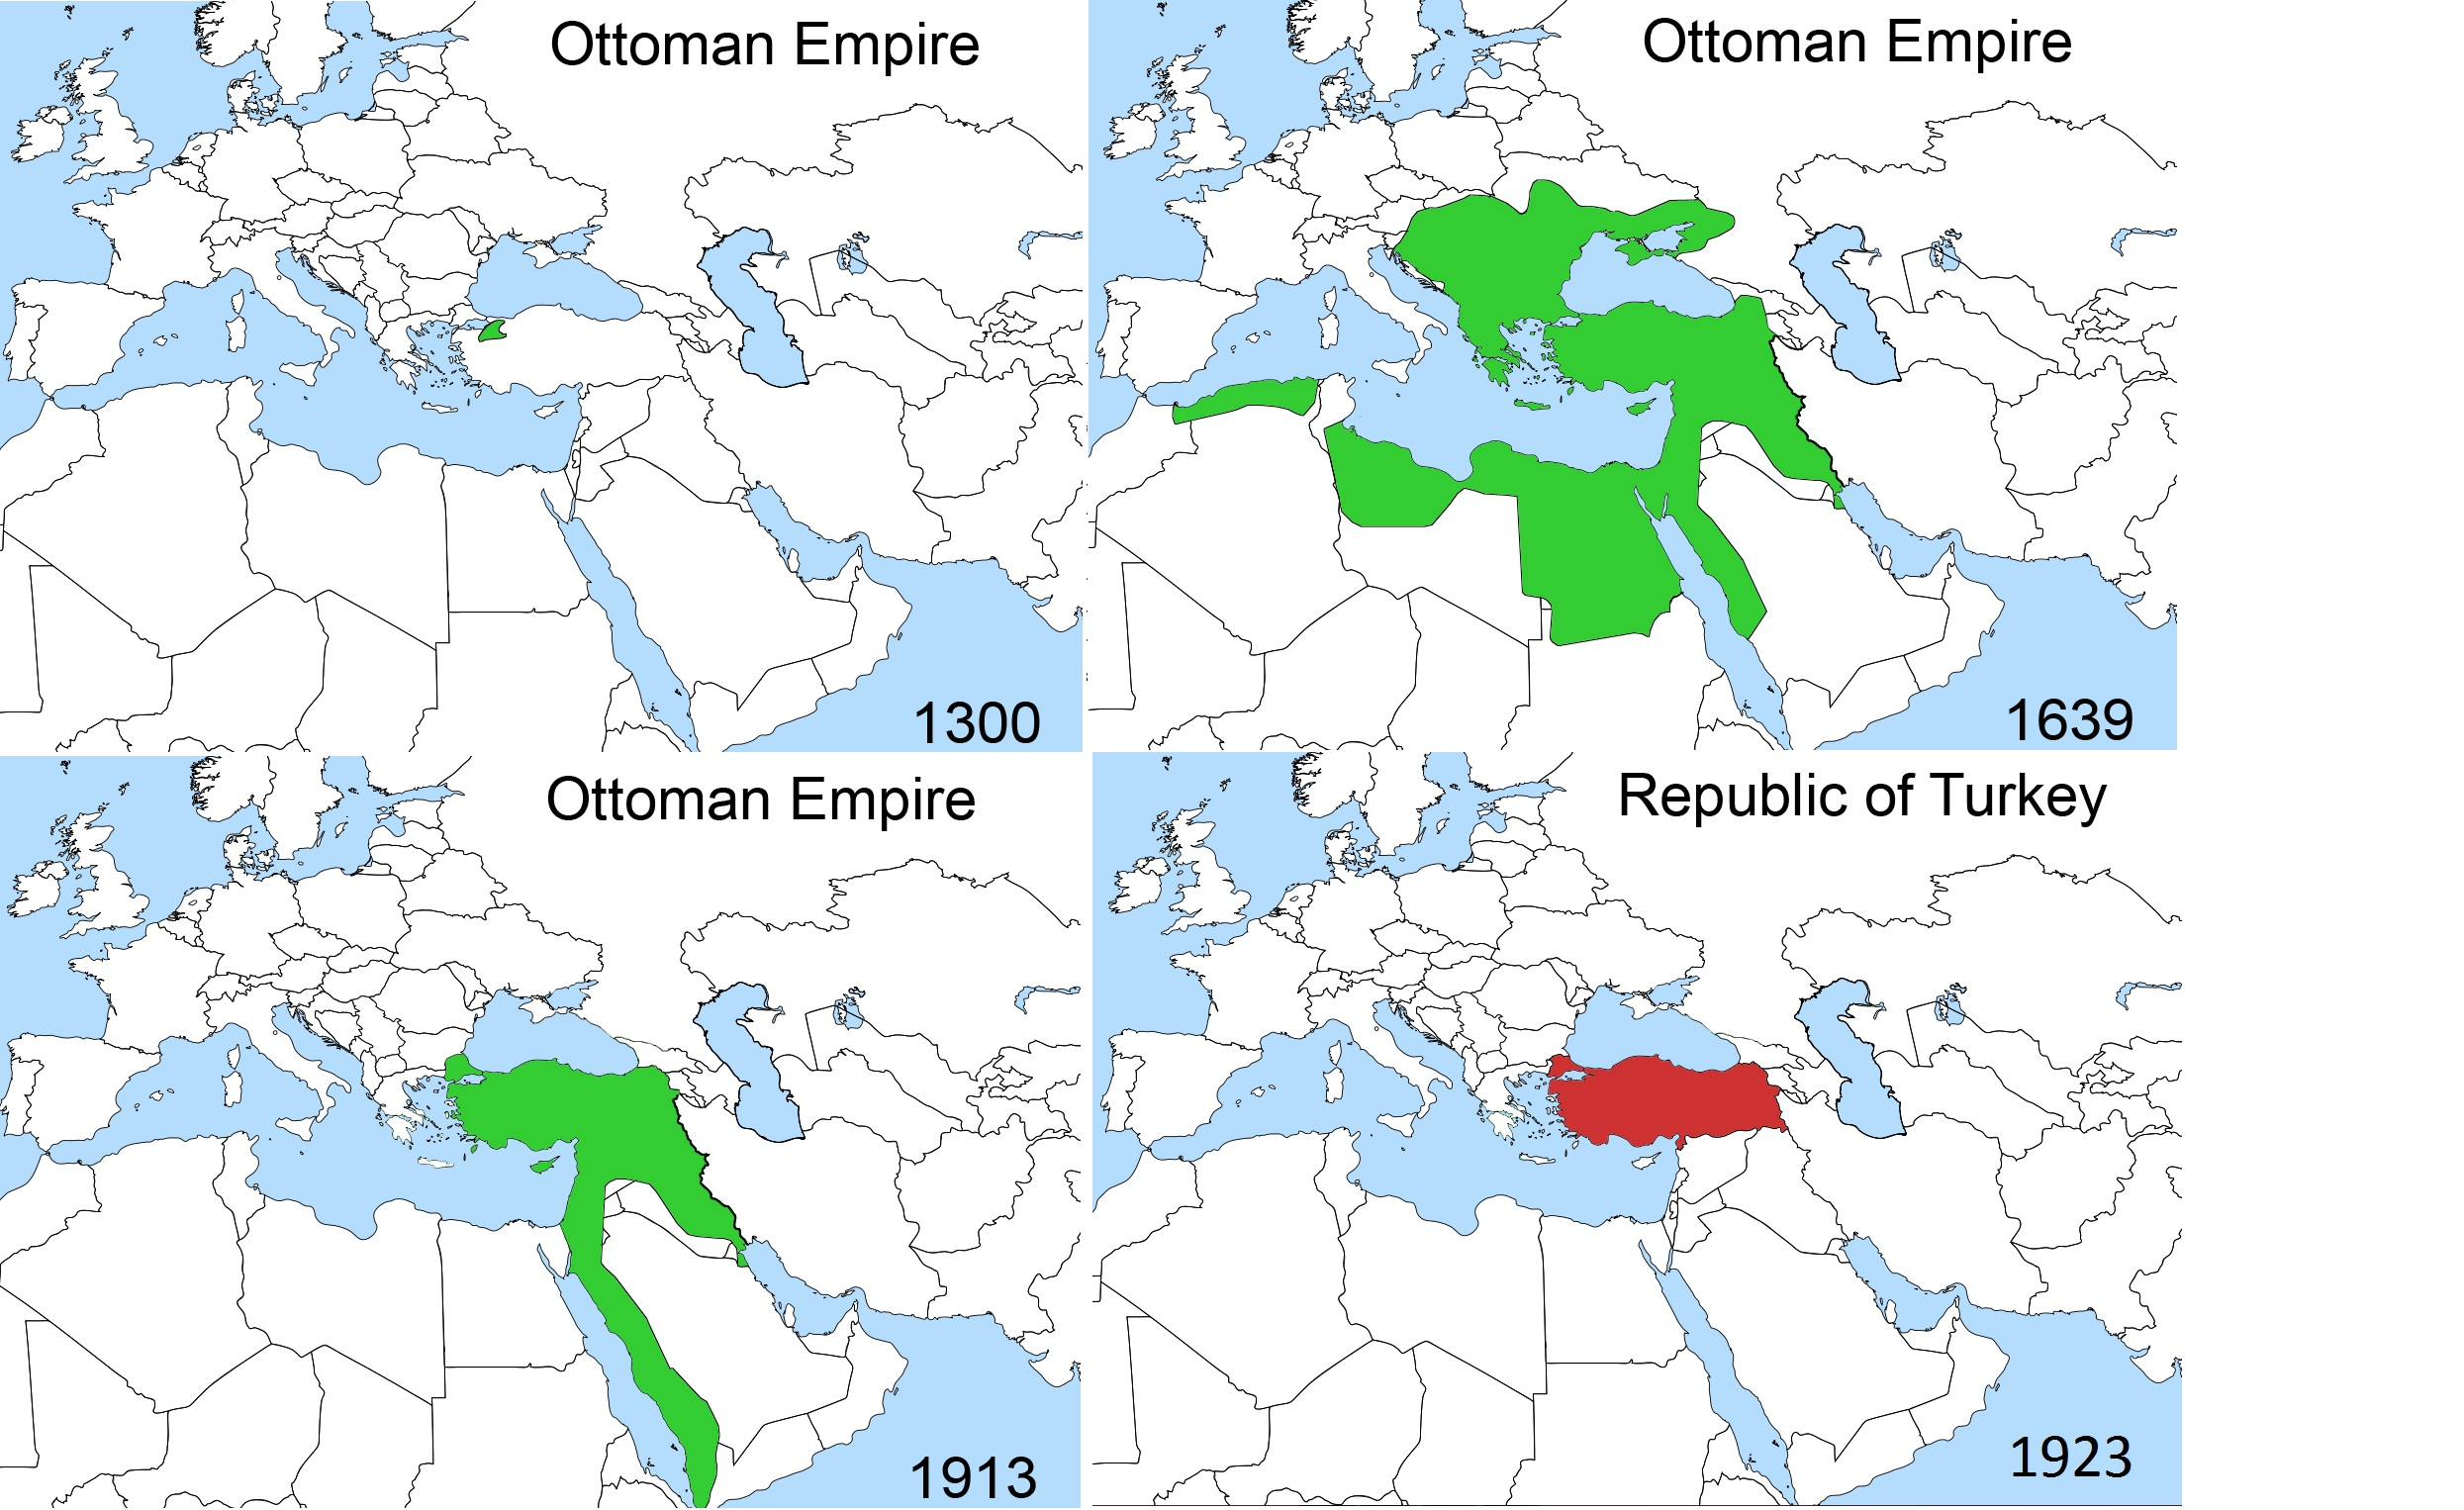 Historiography of the fall of the Ottoman Empire